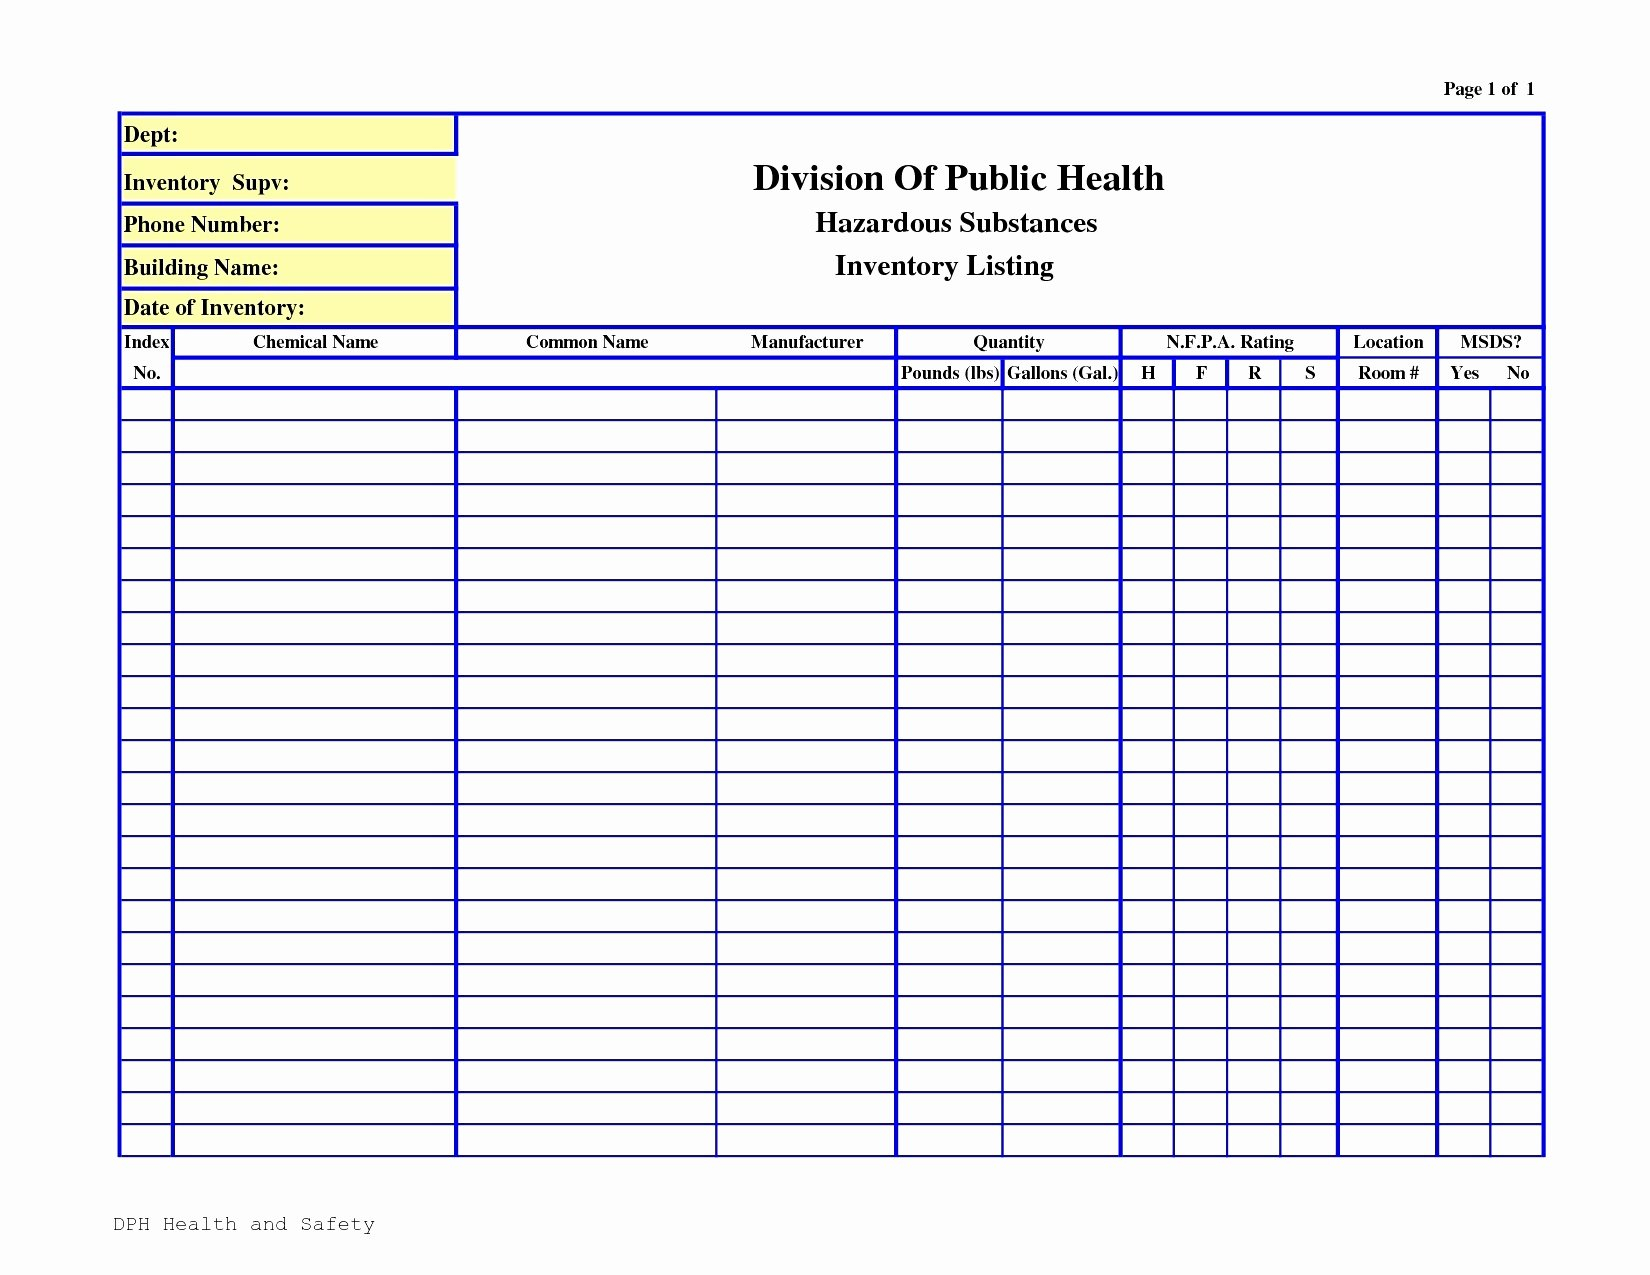 Nist Sp 800 53 Rev 4 Spreadsheet Or Nist 800 53A Rev 4 Spreadsheet With 800 53A Spreadsheet